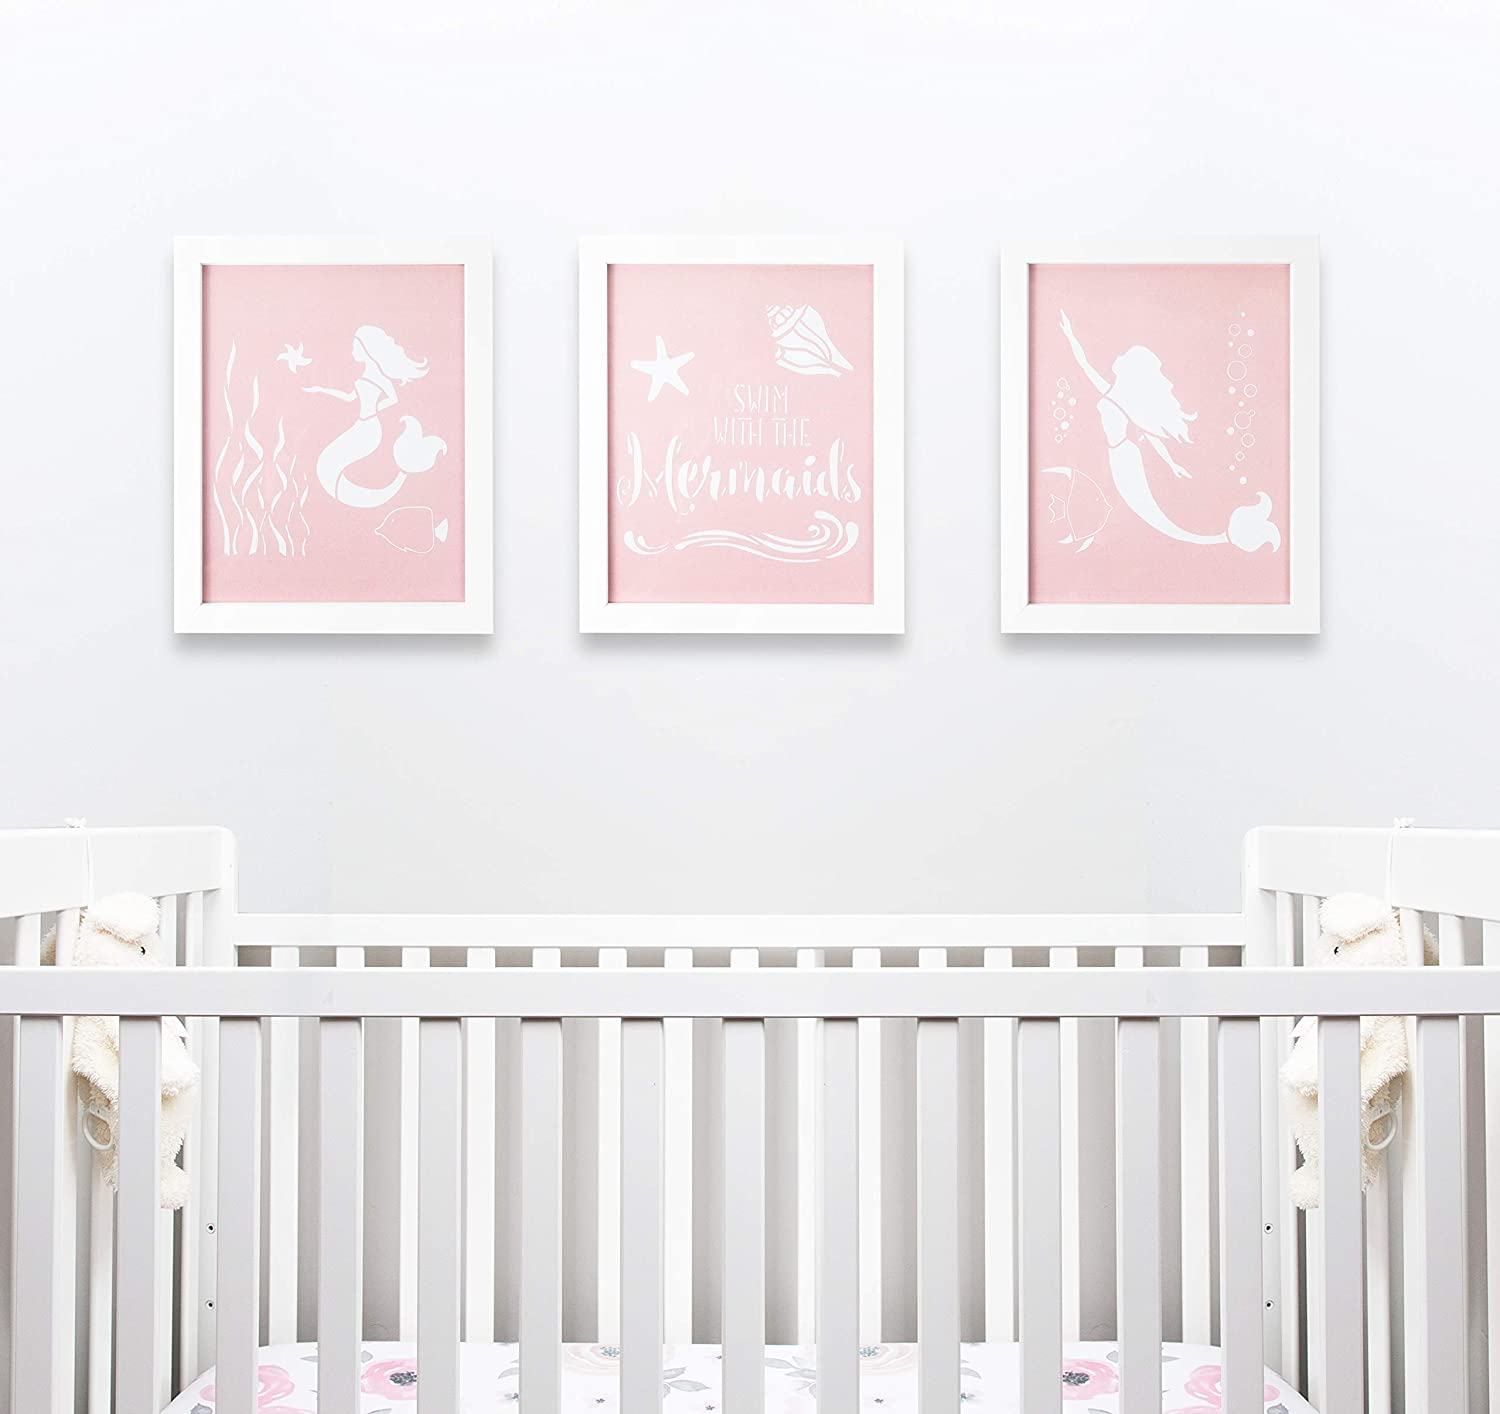 Modern Framed Nursery Decor by Sweet SLSy Set of 3 Mermaid Prints. Cute Mermaids Shells Baby Art Kids Room Wall Baby Room Decor Inspirational Pink